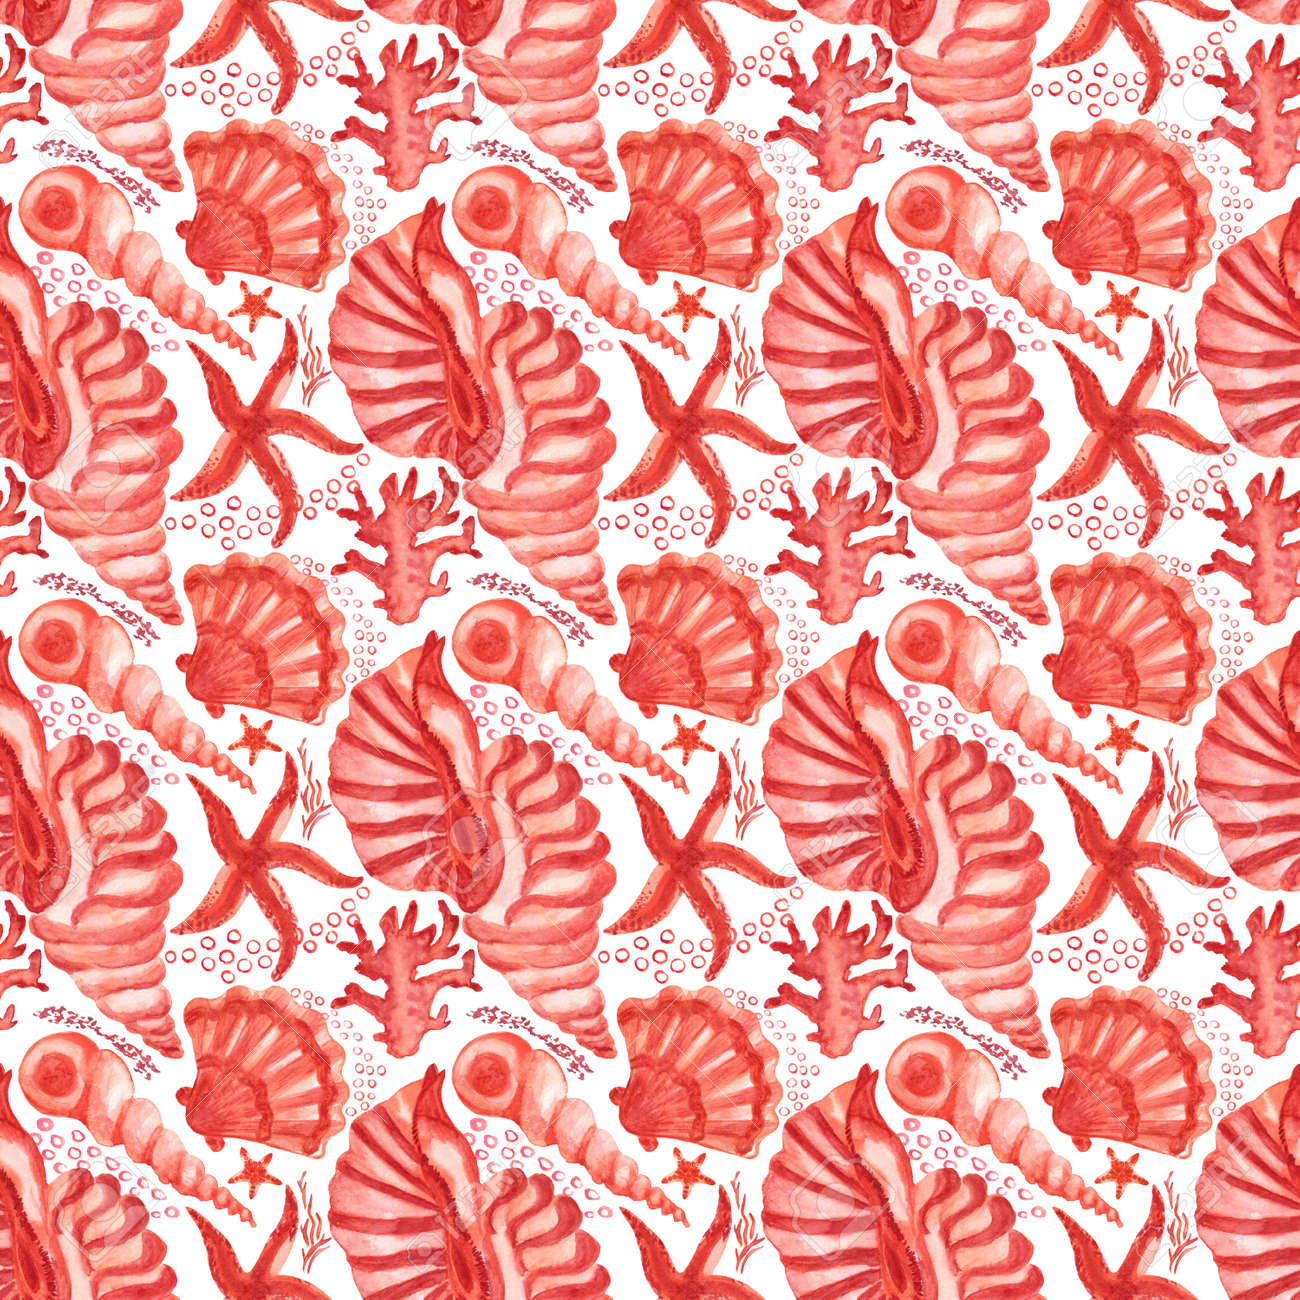 Watercolored seashells and starfishes seamless pattern. Illustration of shells and sea stars for for creating fabrics, textile, decoupage, wallpapers, print, gift wrapping paper, invitations, textile. - 166653598